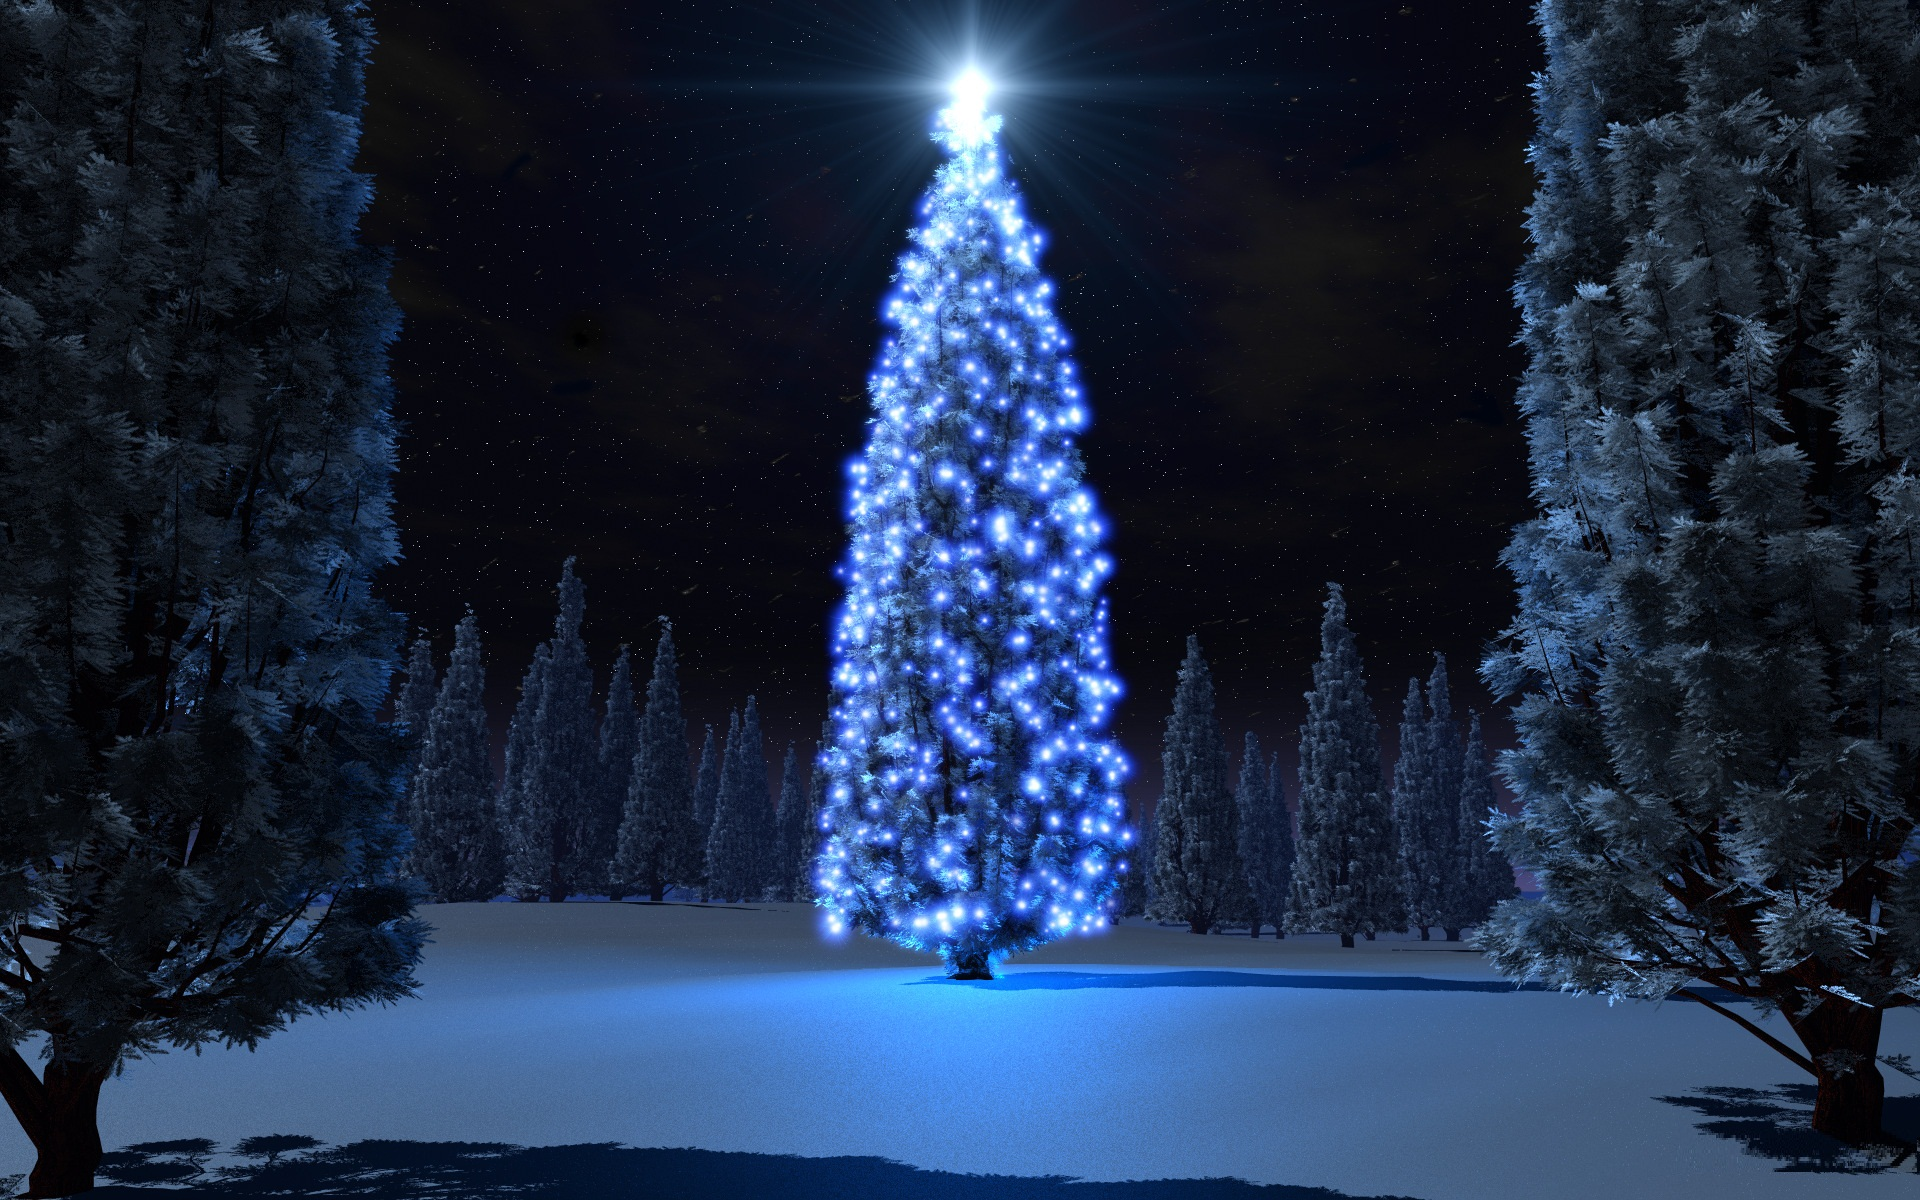 Free download 12] Christmas Live Wallpaper for Computer on ...